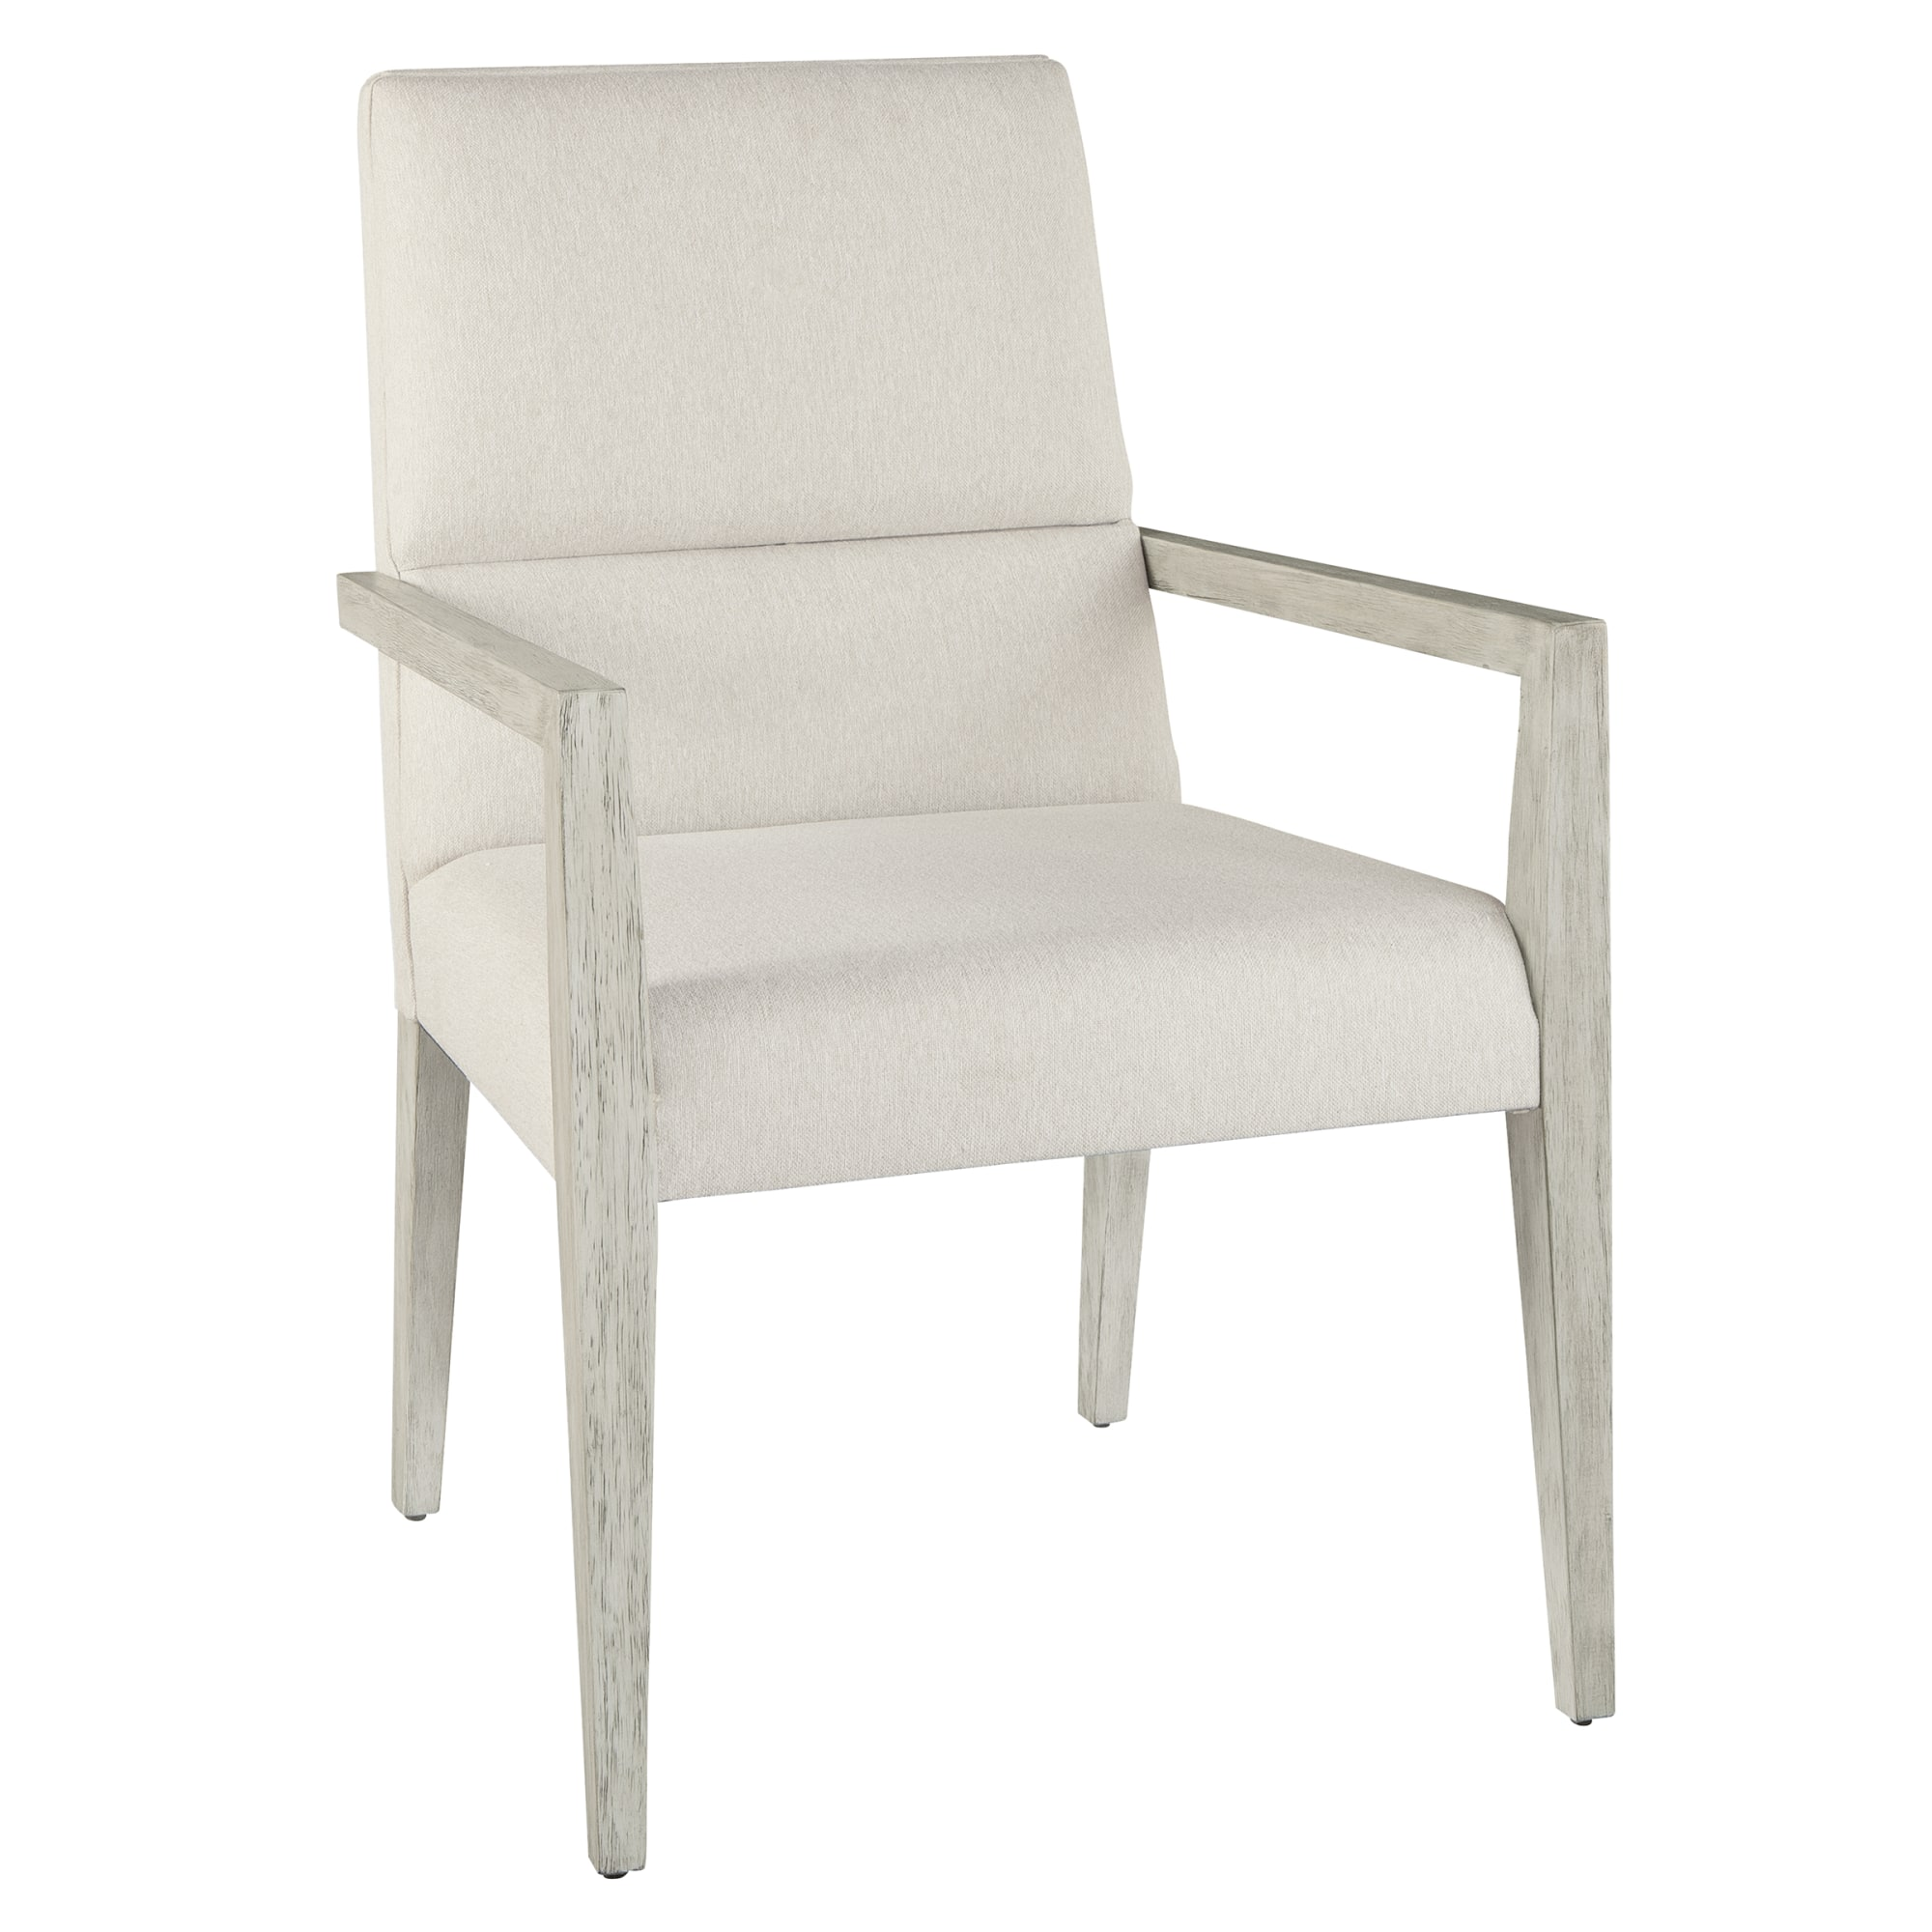 Image for 2-4122 Sierra Heights Upholstered Arm Chair from Hekman Official Website